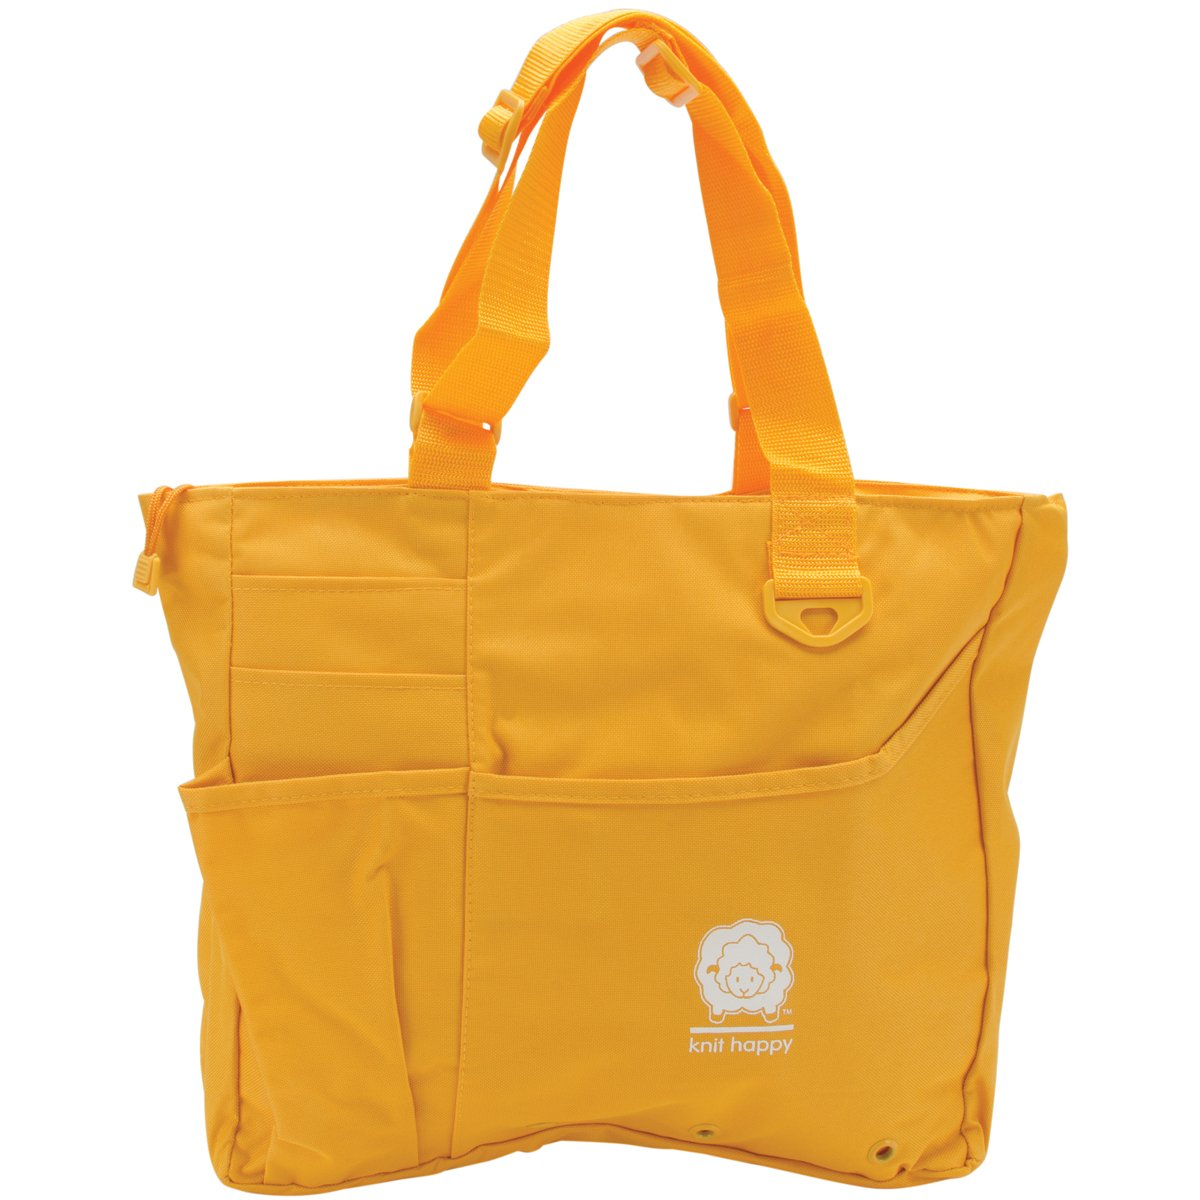 K1C2 Knit Happy Bright Bag, 15 by 13 by 4-Inch, Yellow